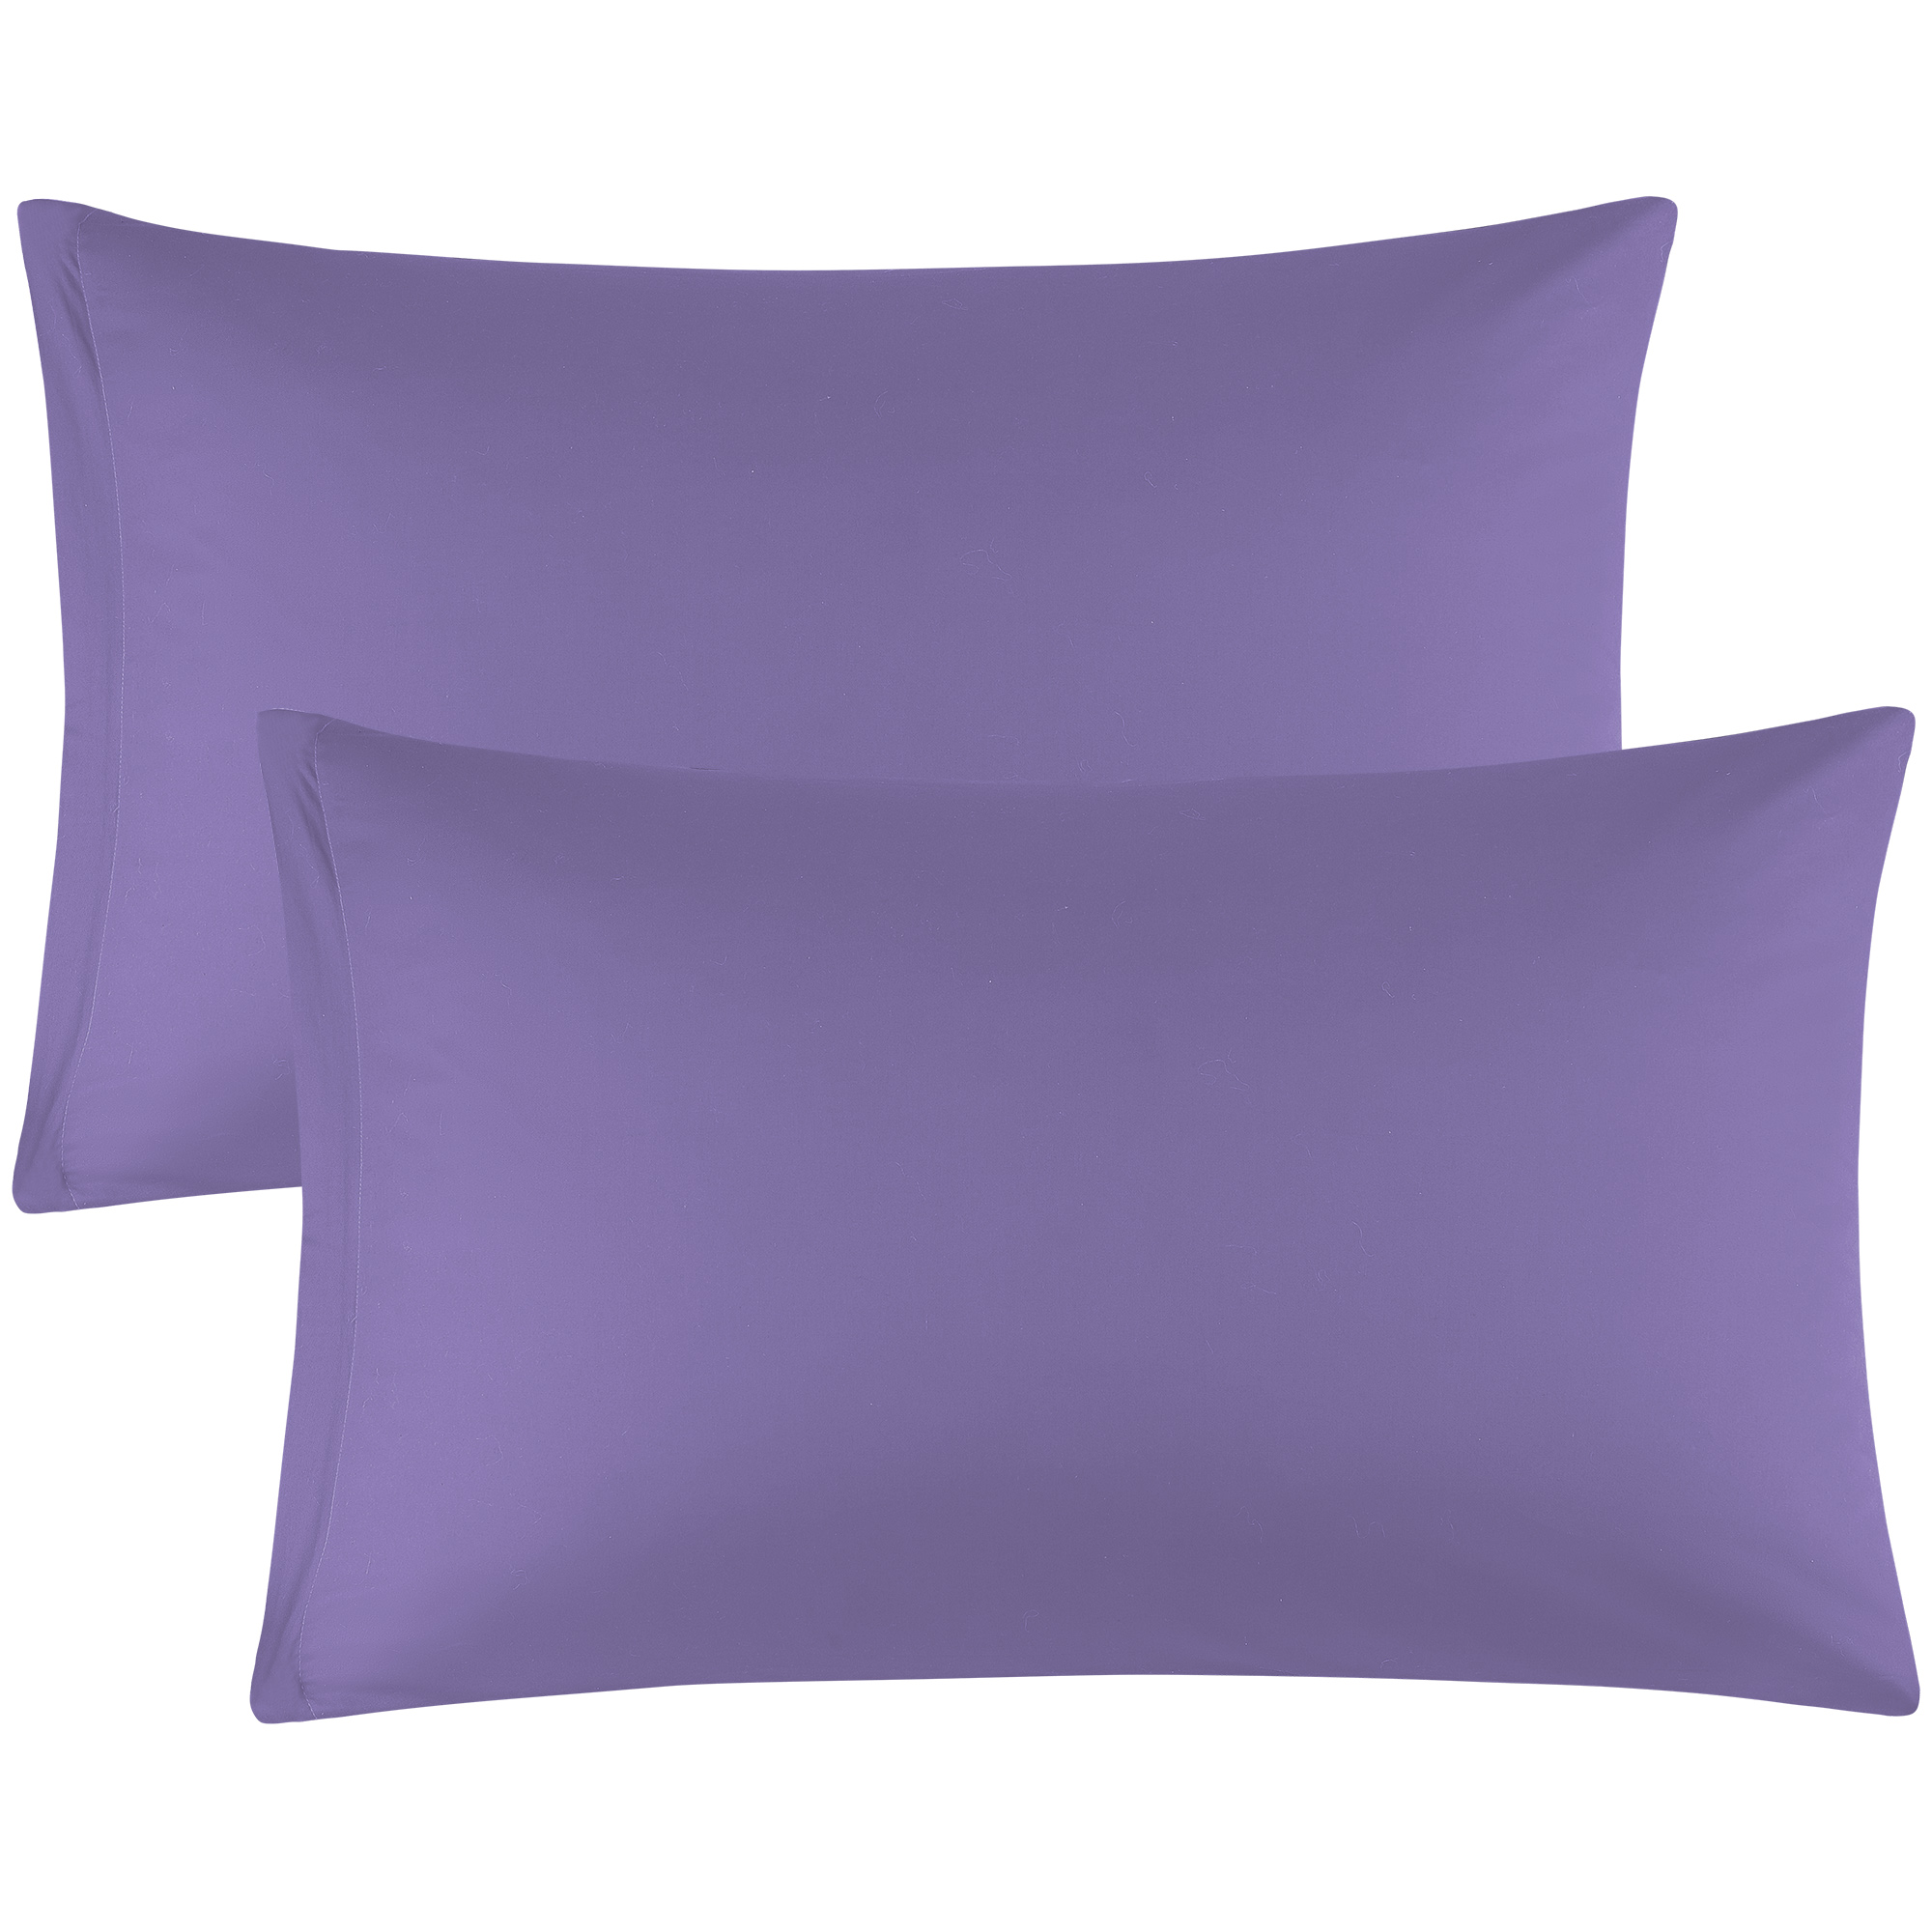 Zippered Pillowcases Covers Egyptian Cotton 2-Pack (20 x 30 Inch, Purple)